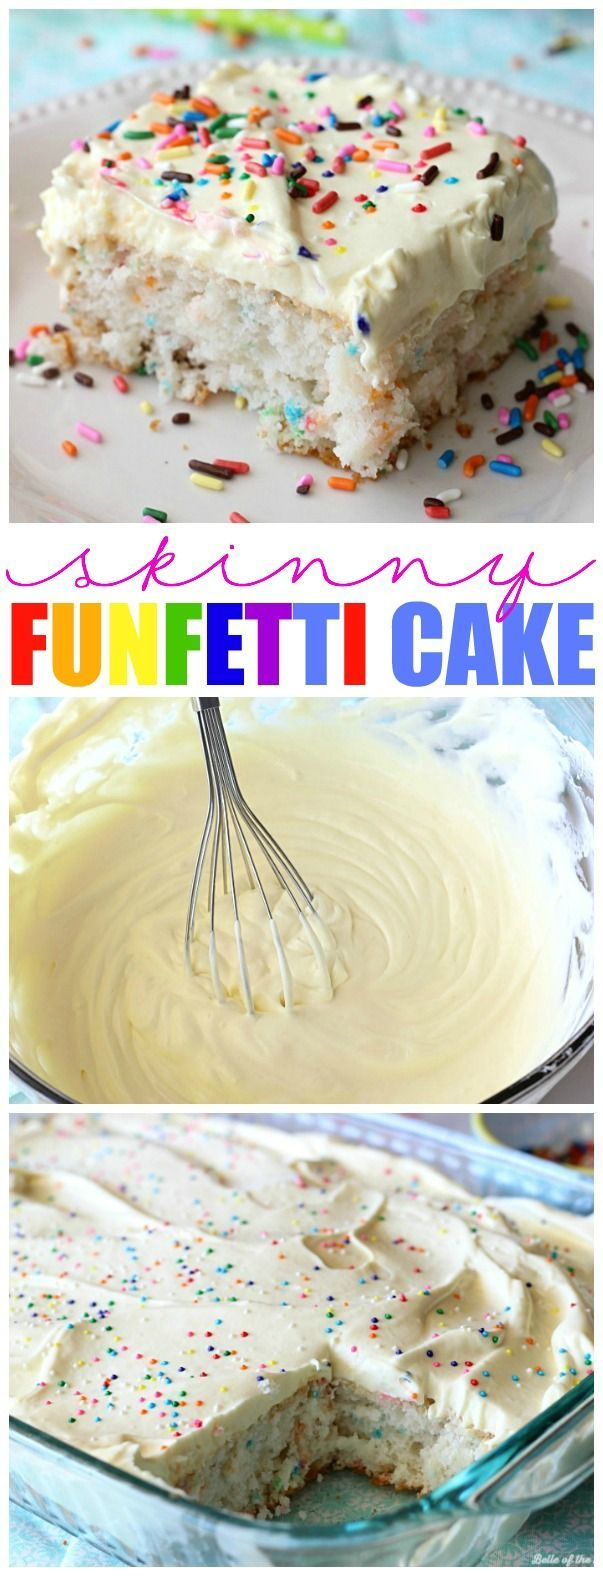 Funfetti Cake This Skinny Funfetti Cake is made with a cake mix and Greek yogurt, then topped with a light and fluffy whipped frosting! Each serving is less than 200 calories!This Skinny Funfetti Cake is made with a cake mix and Greek yogurt, then topped with a light and fluffy whipped frosting! Each serving is less than 200 calories!